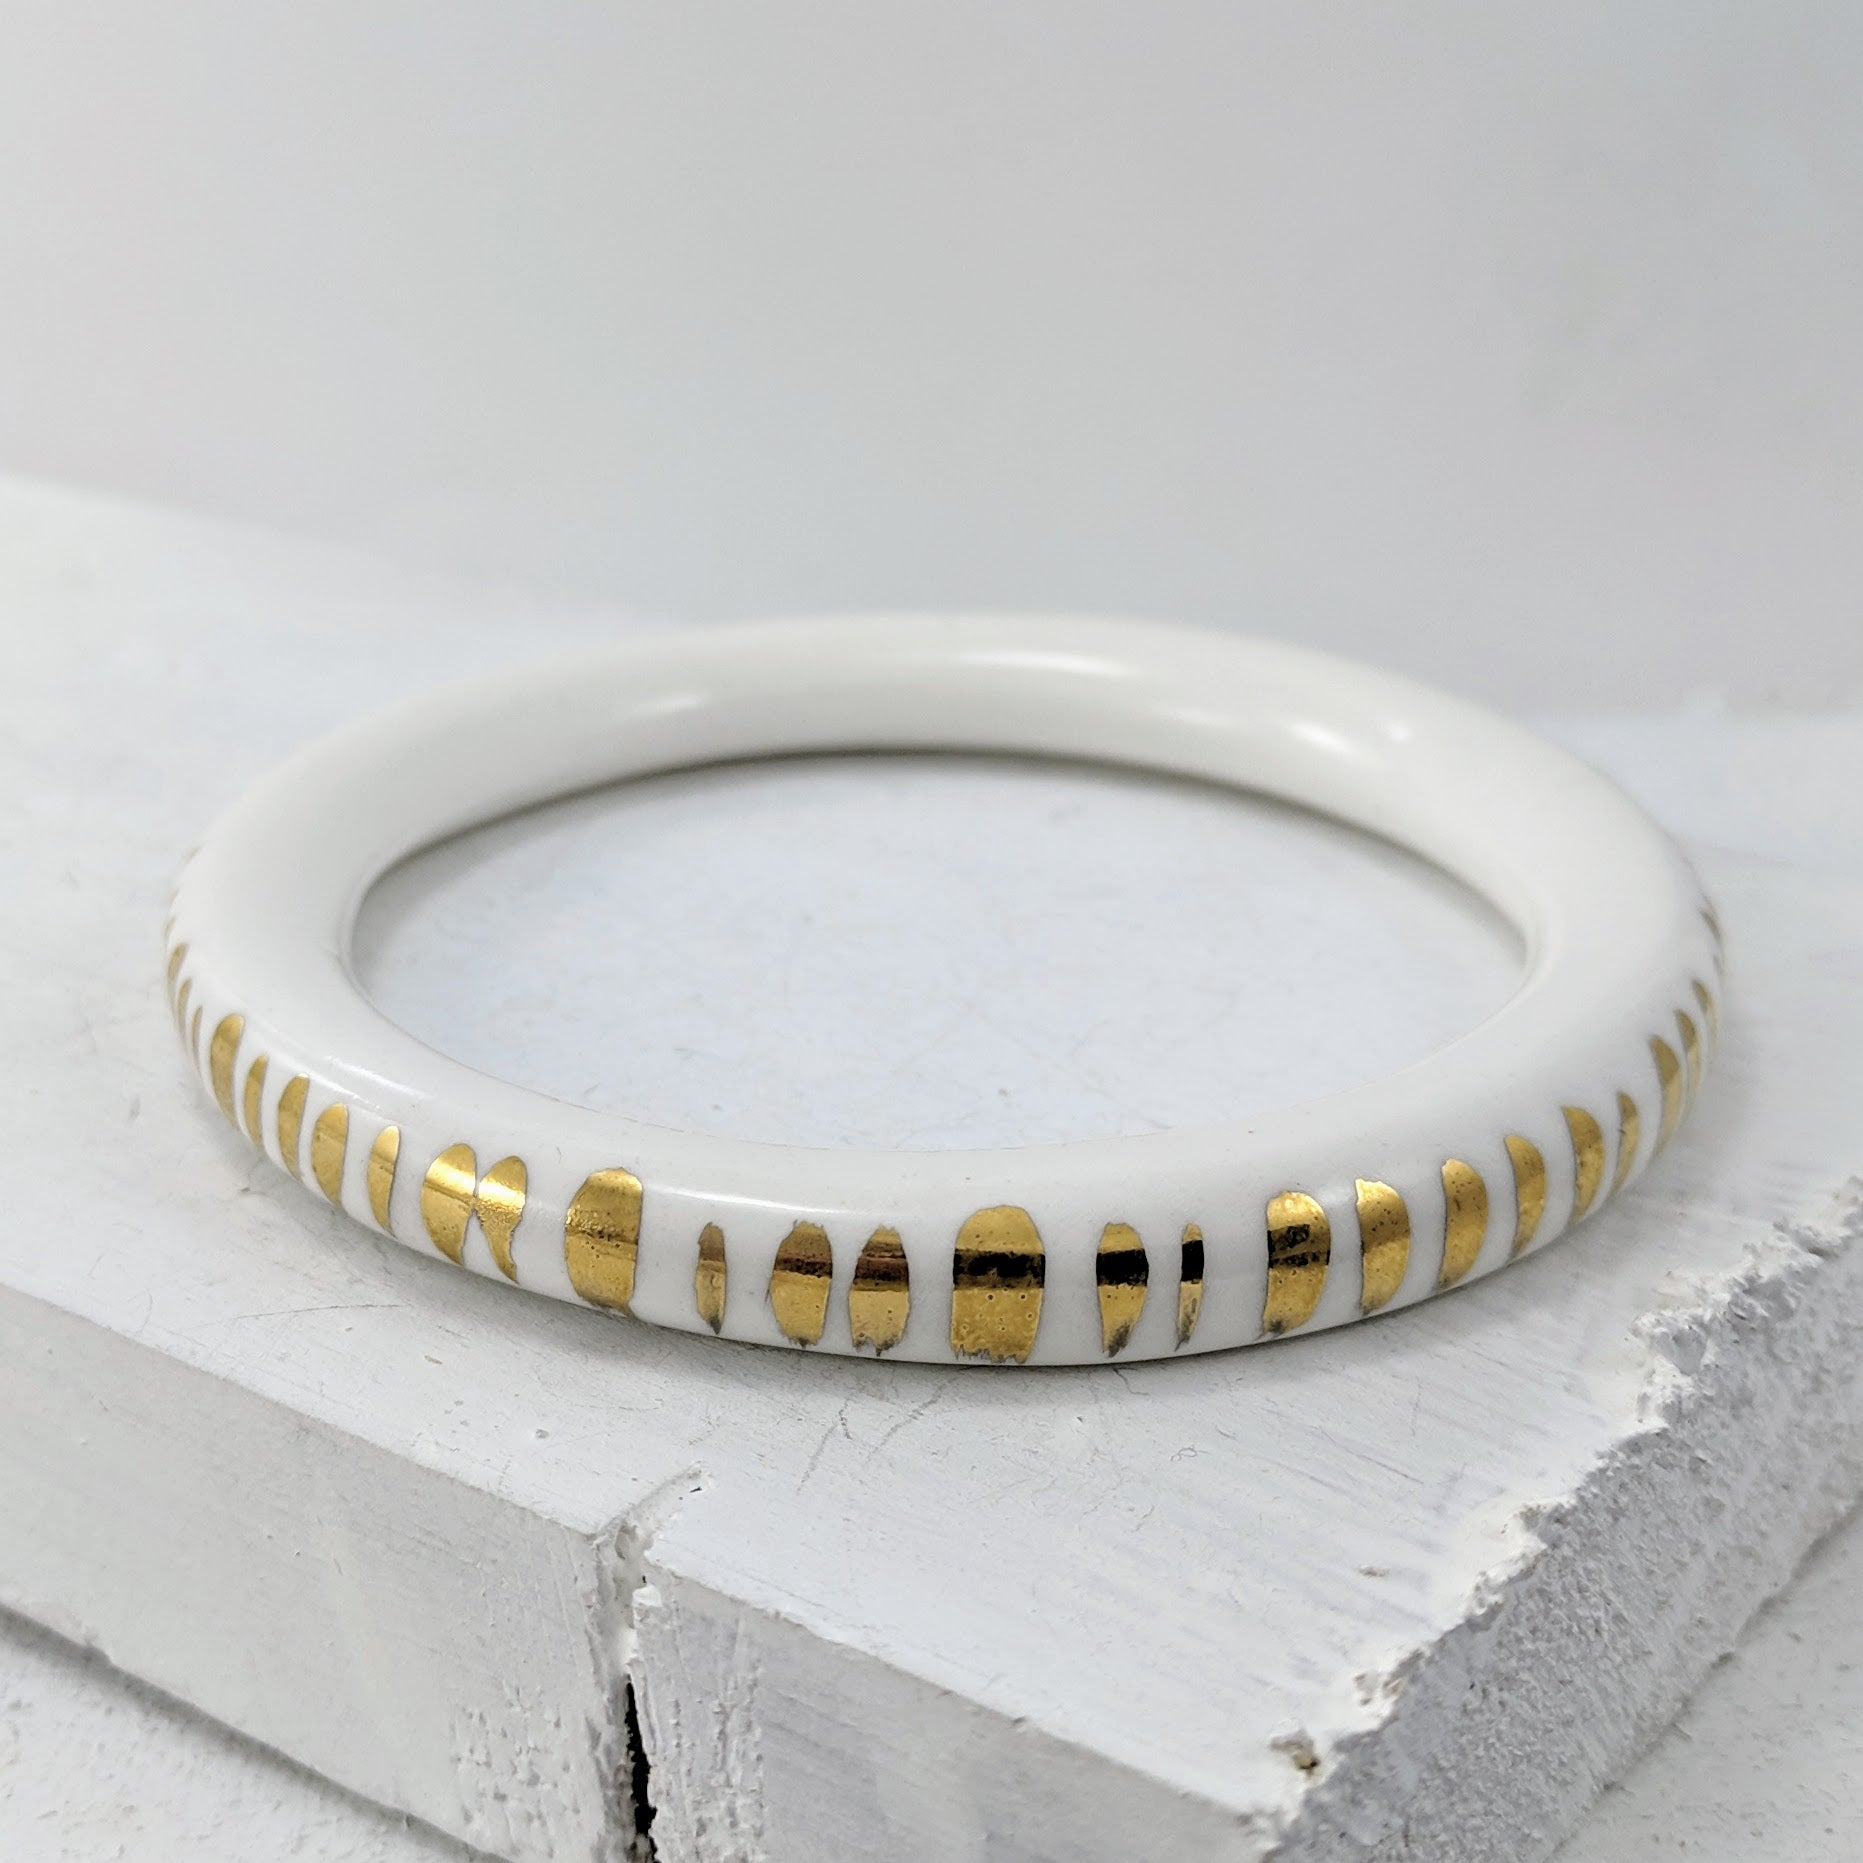 Unique jewellery handmade in New Zealand by Marita Green. White porcelain bangle with a smooth shiny finish and thick gold foil dashes on the outer surface